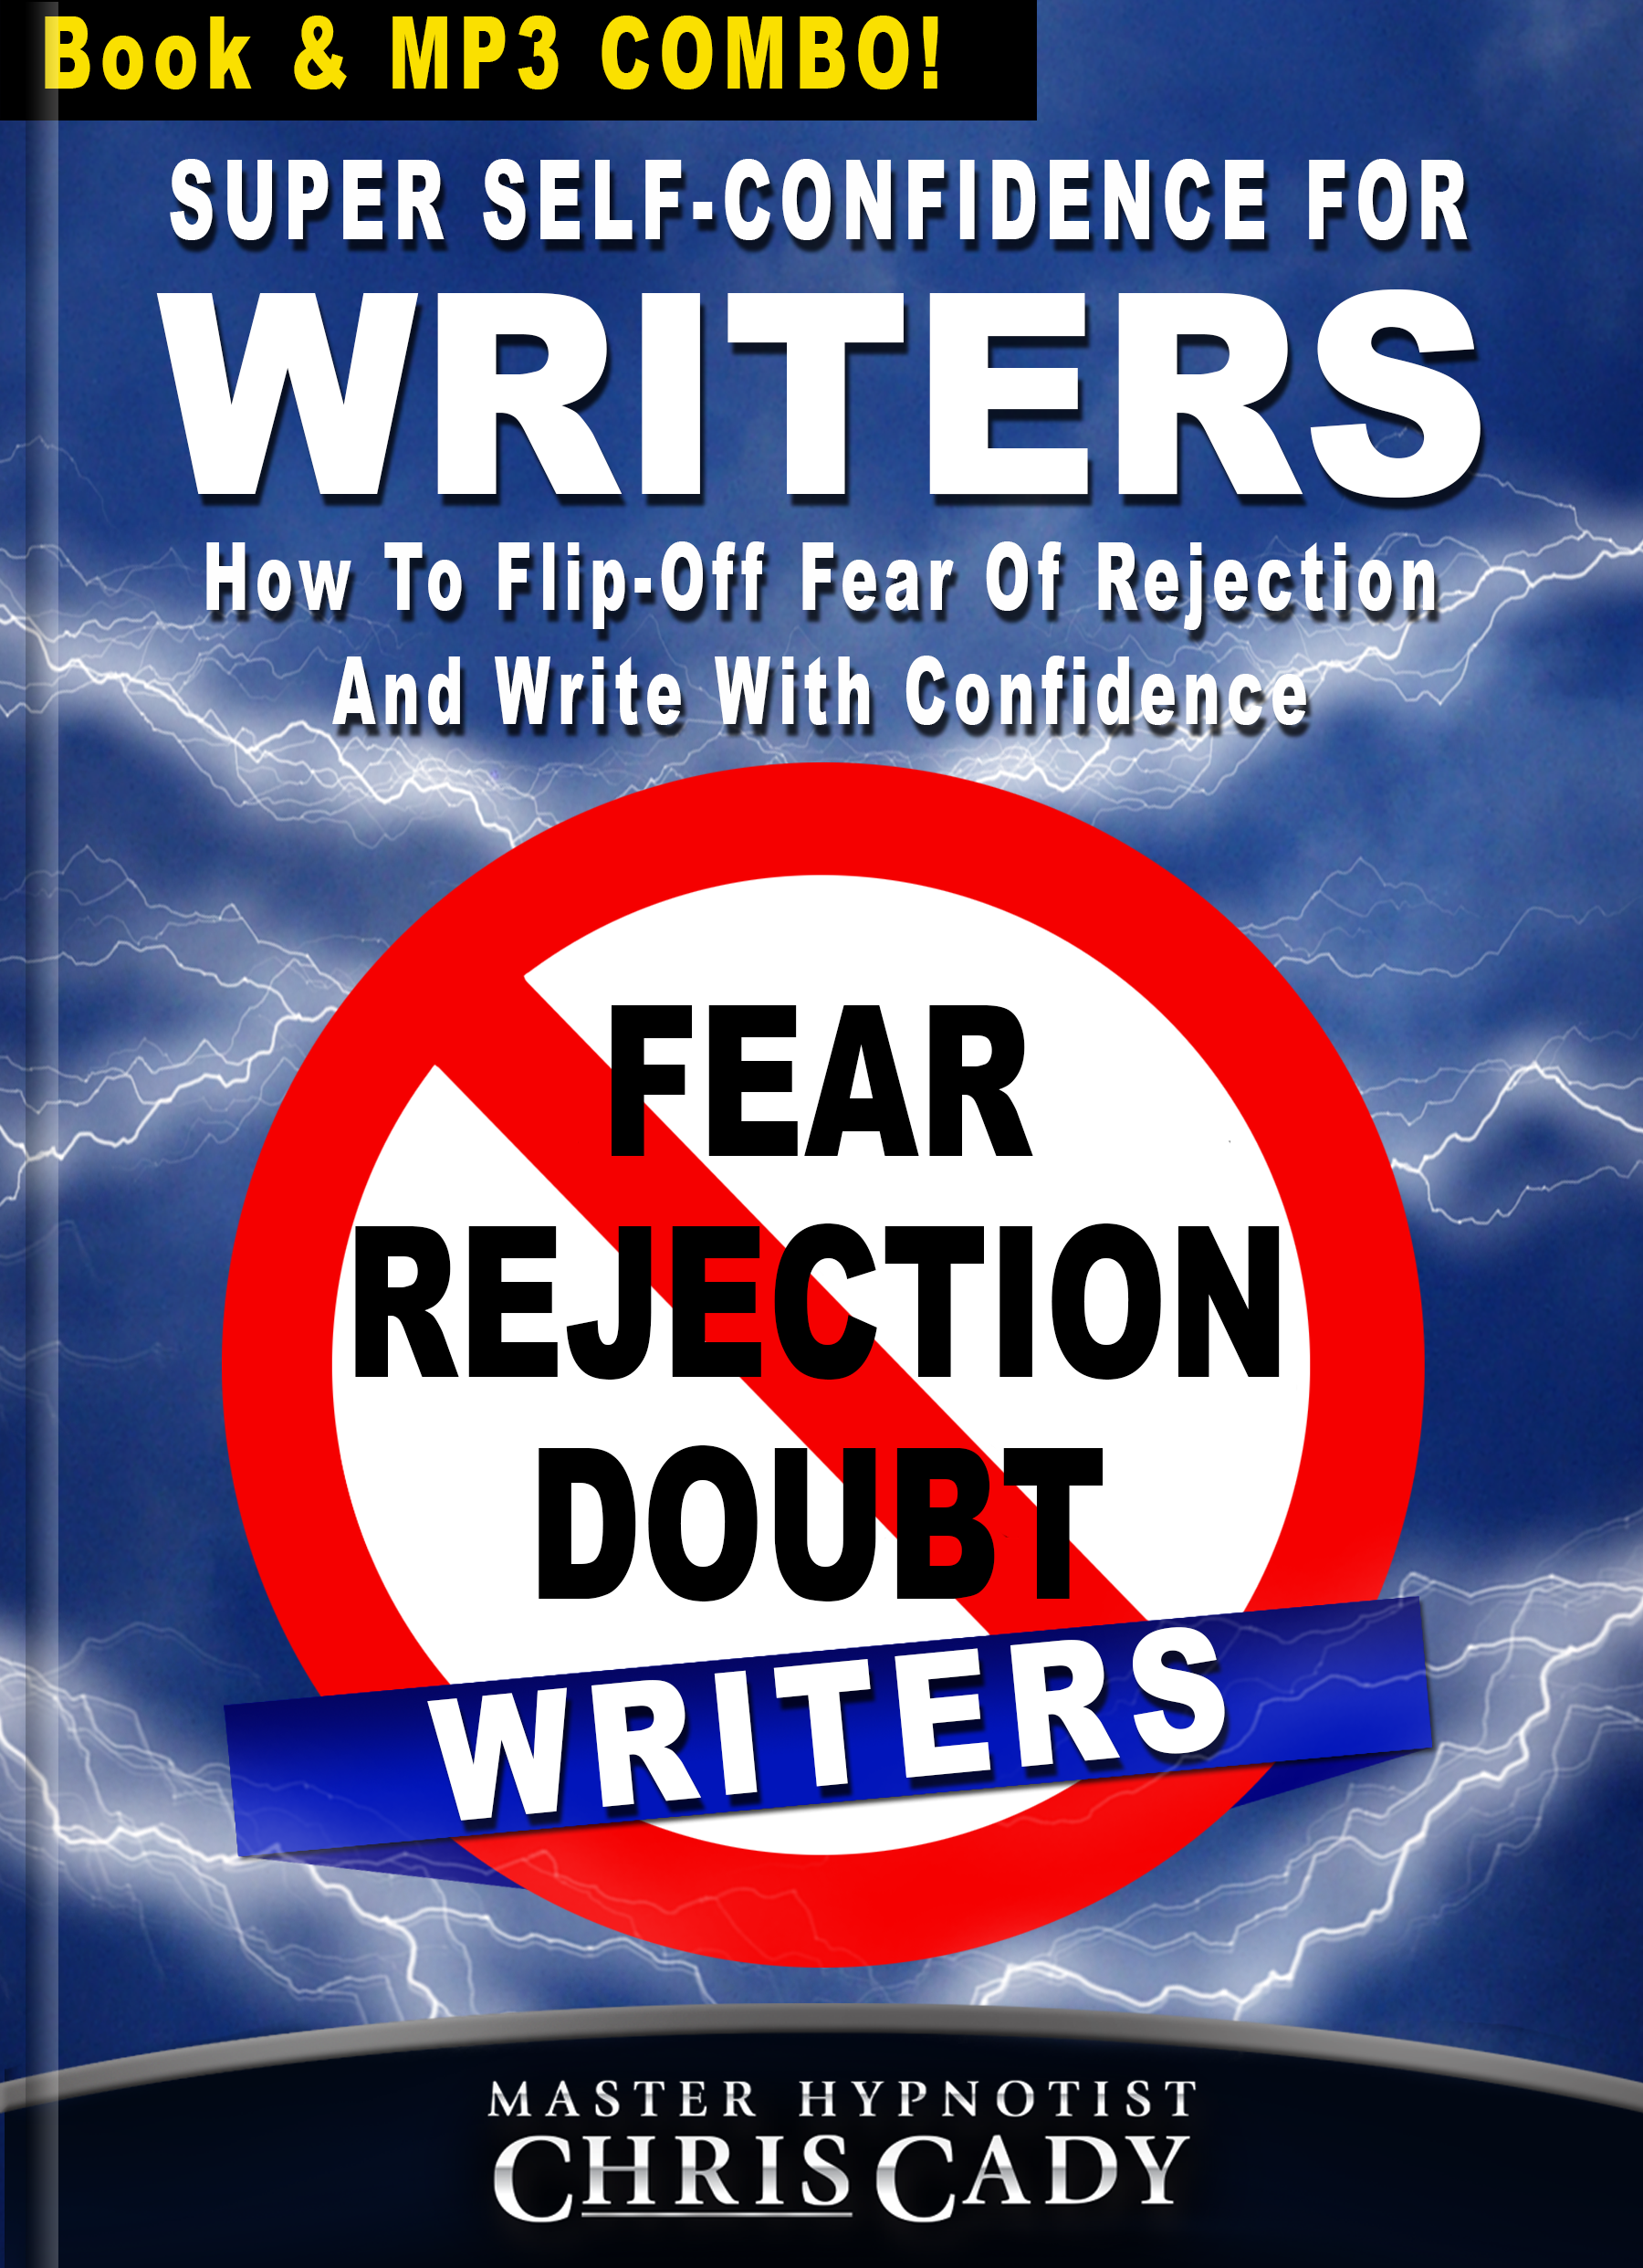 writers self confidence for writers book how to flip off fear of rejection failure and doubt and write with confidence hypnosis